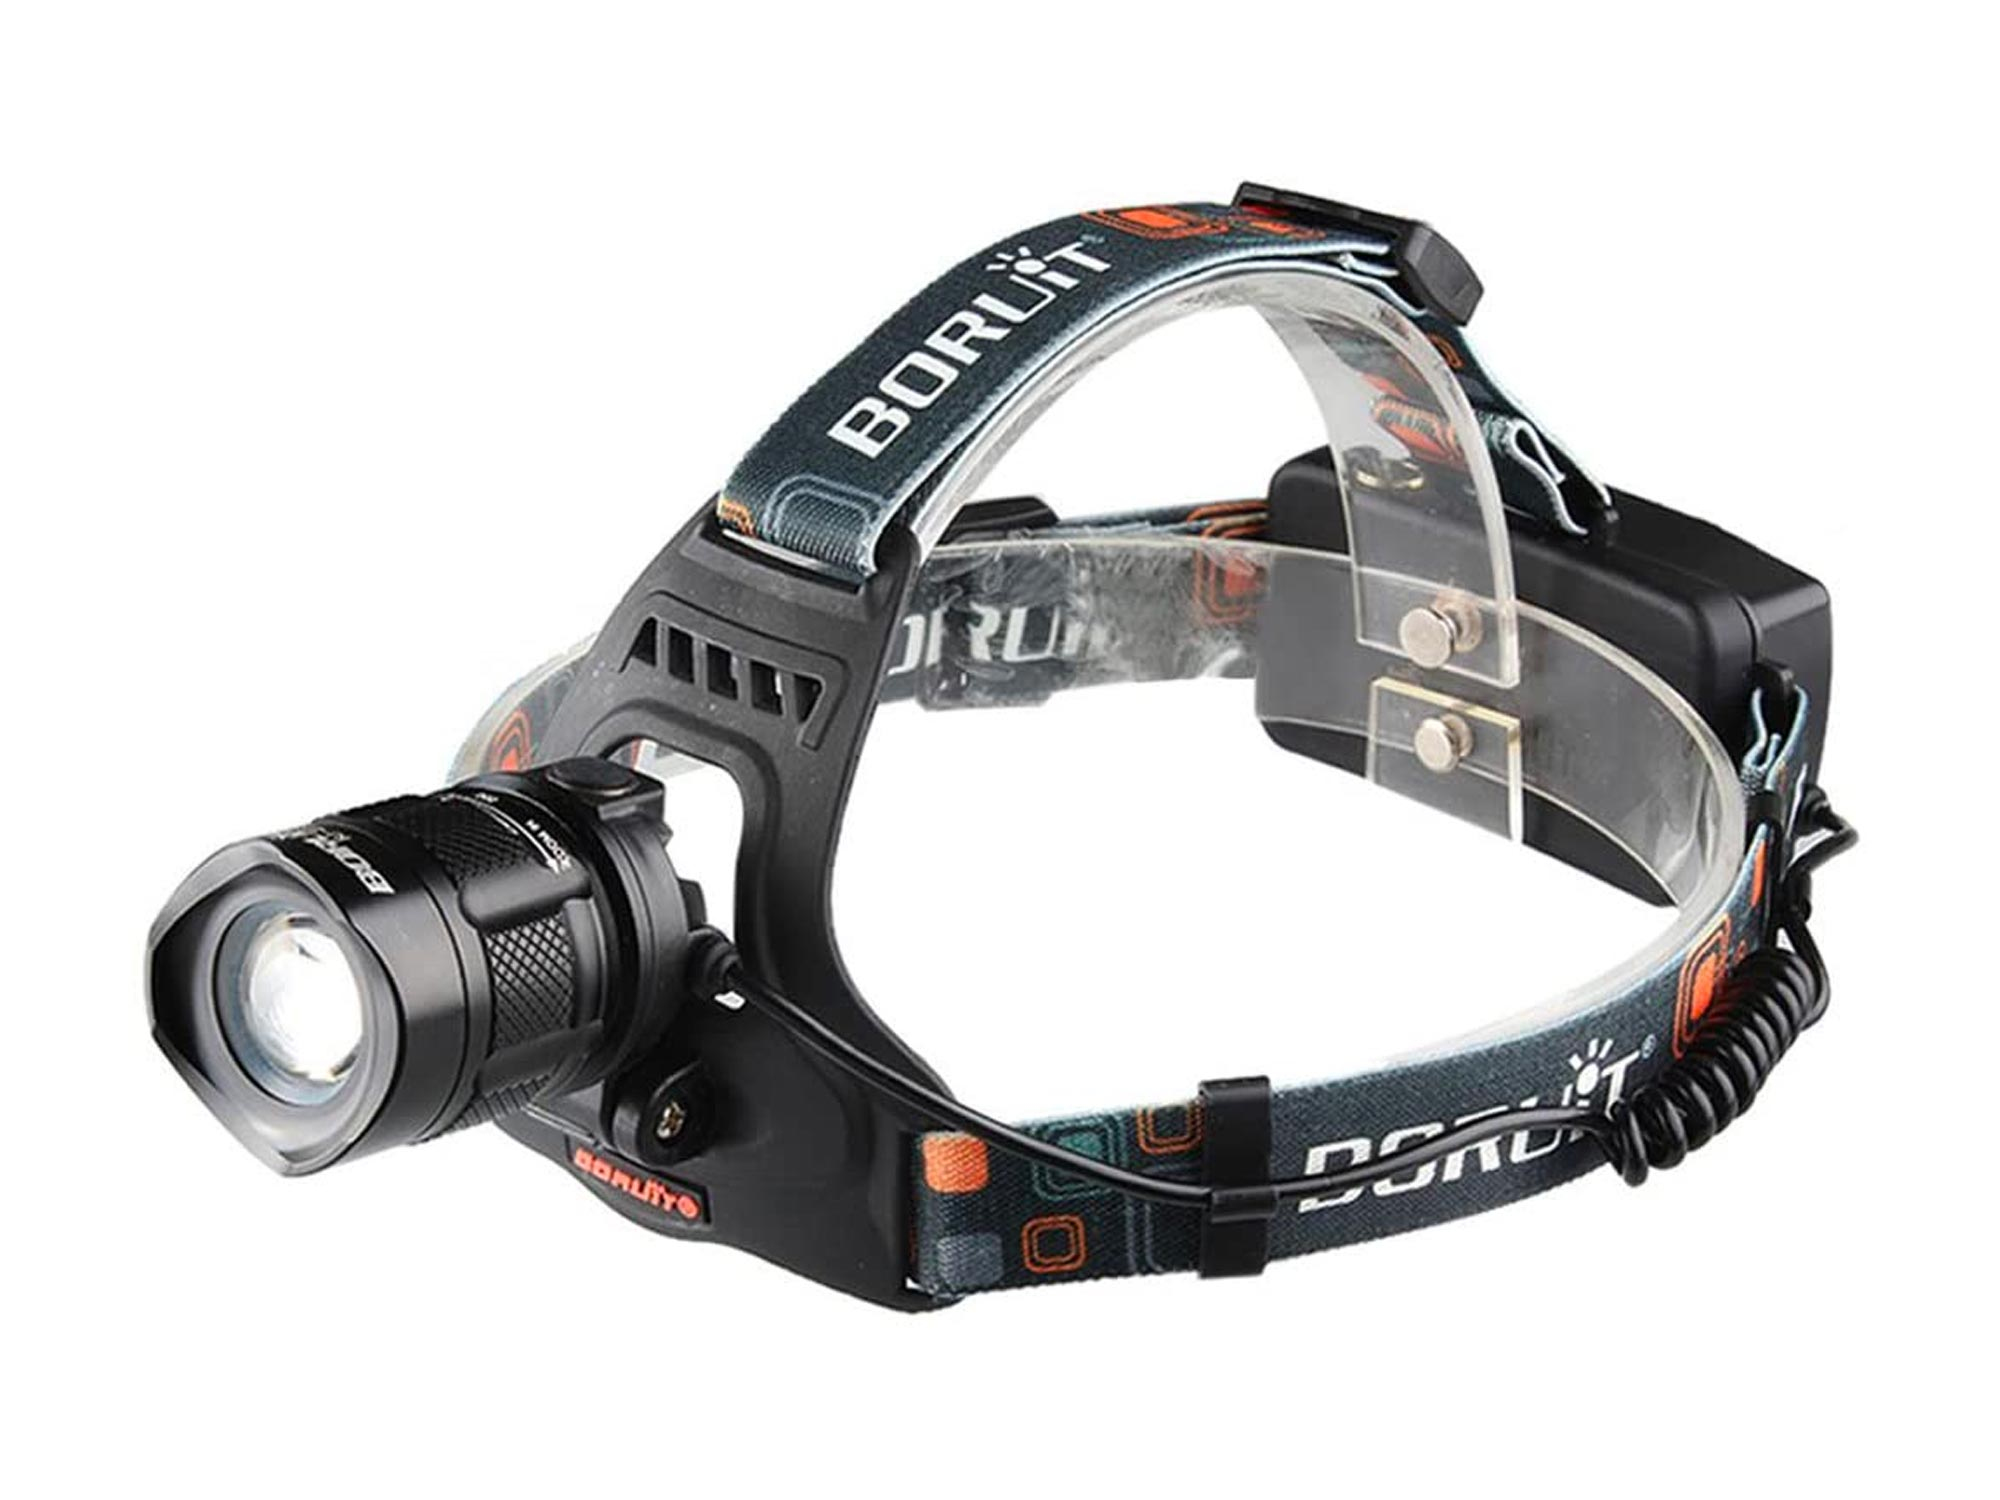 BESTSUN 2000 Lumens 5 Modes Zoomable Rechargeable LED Headlamp